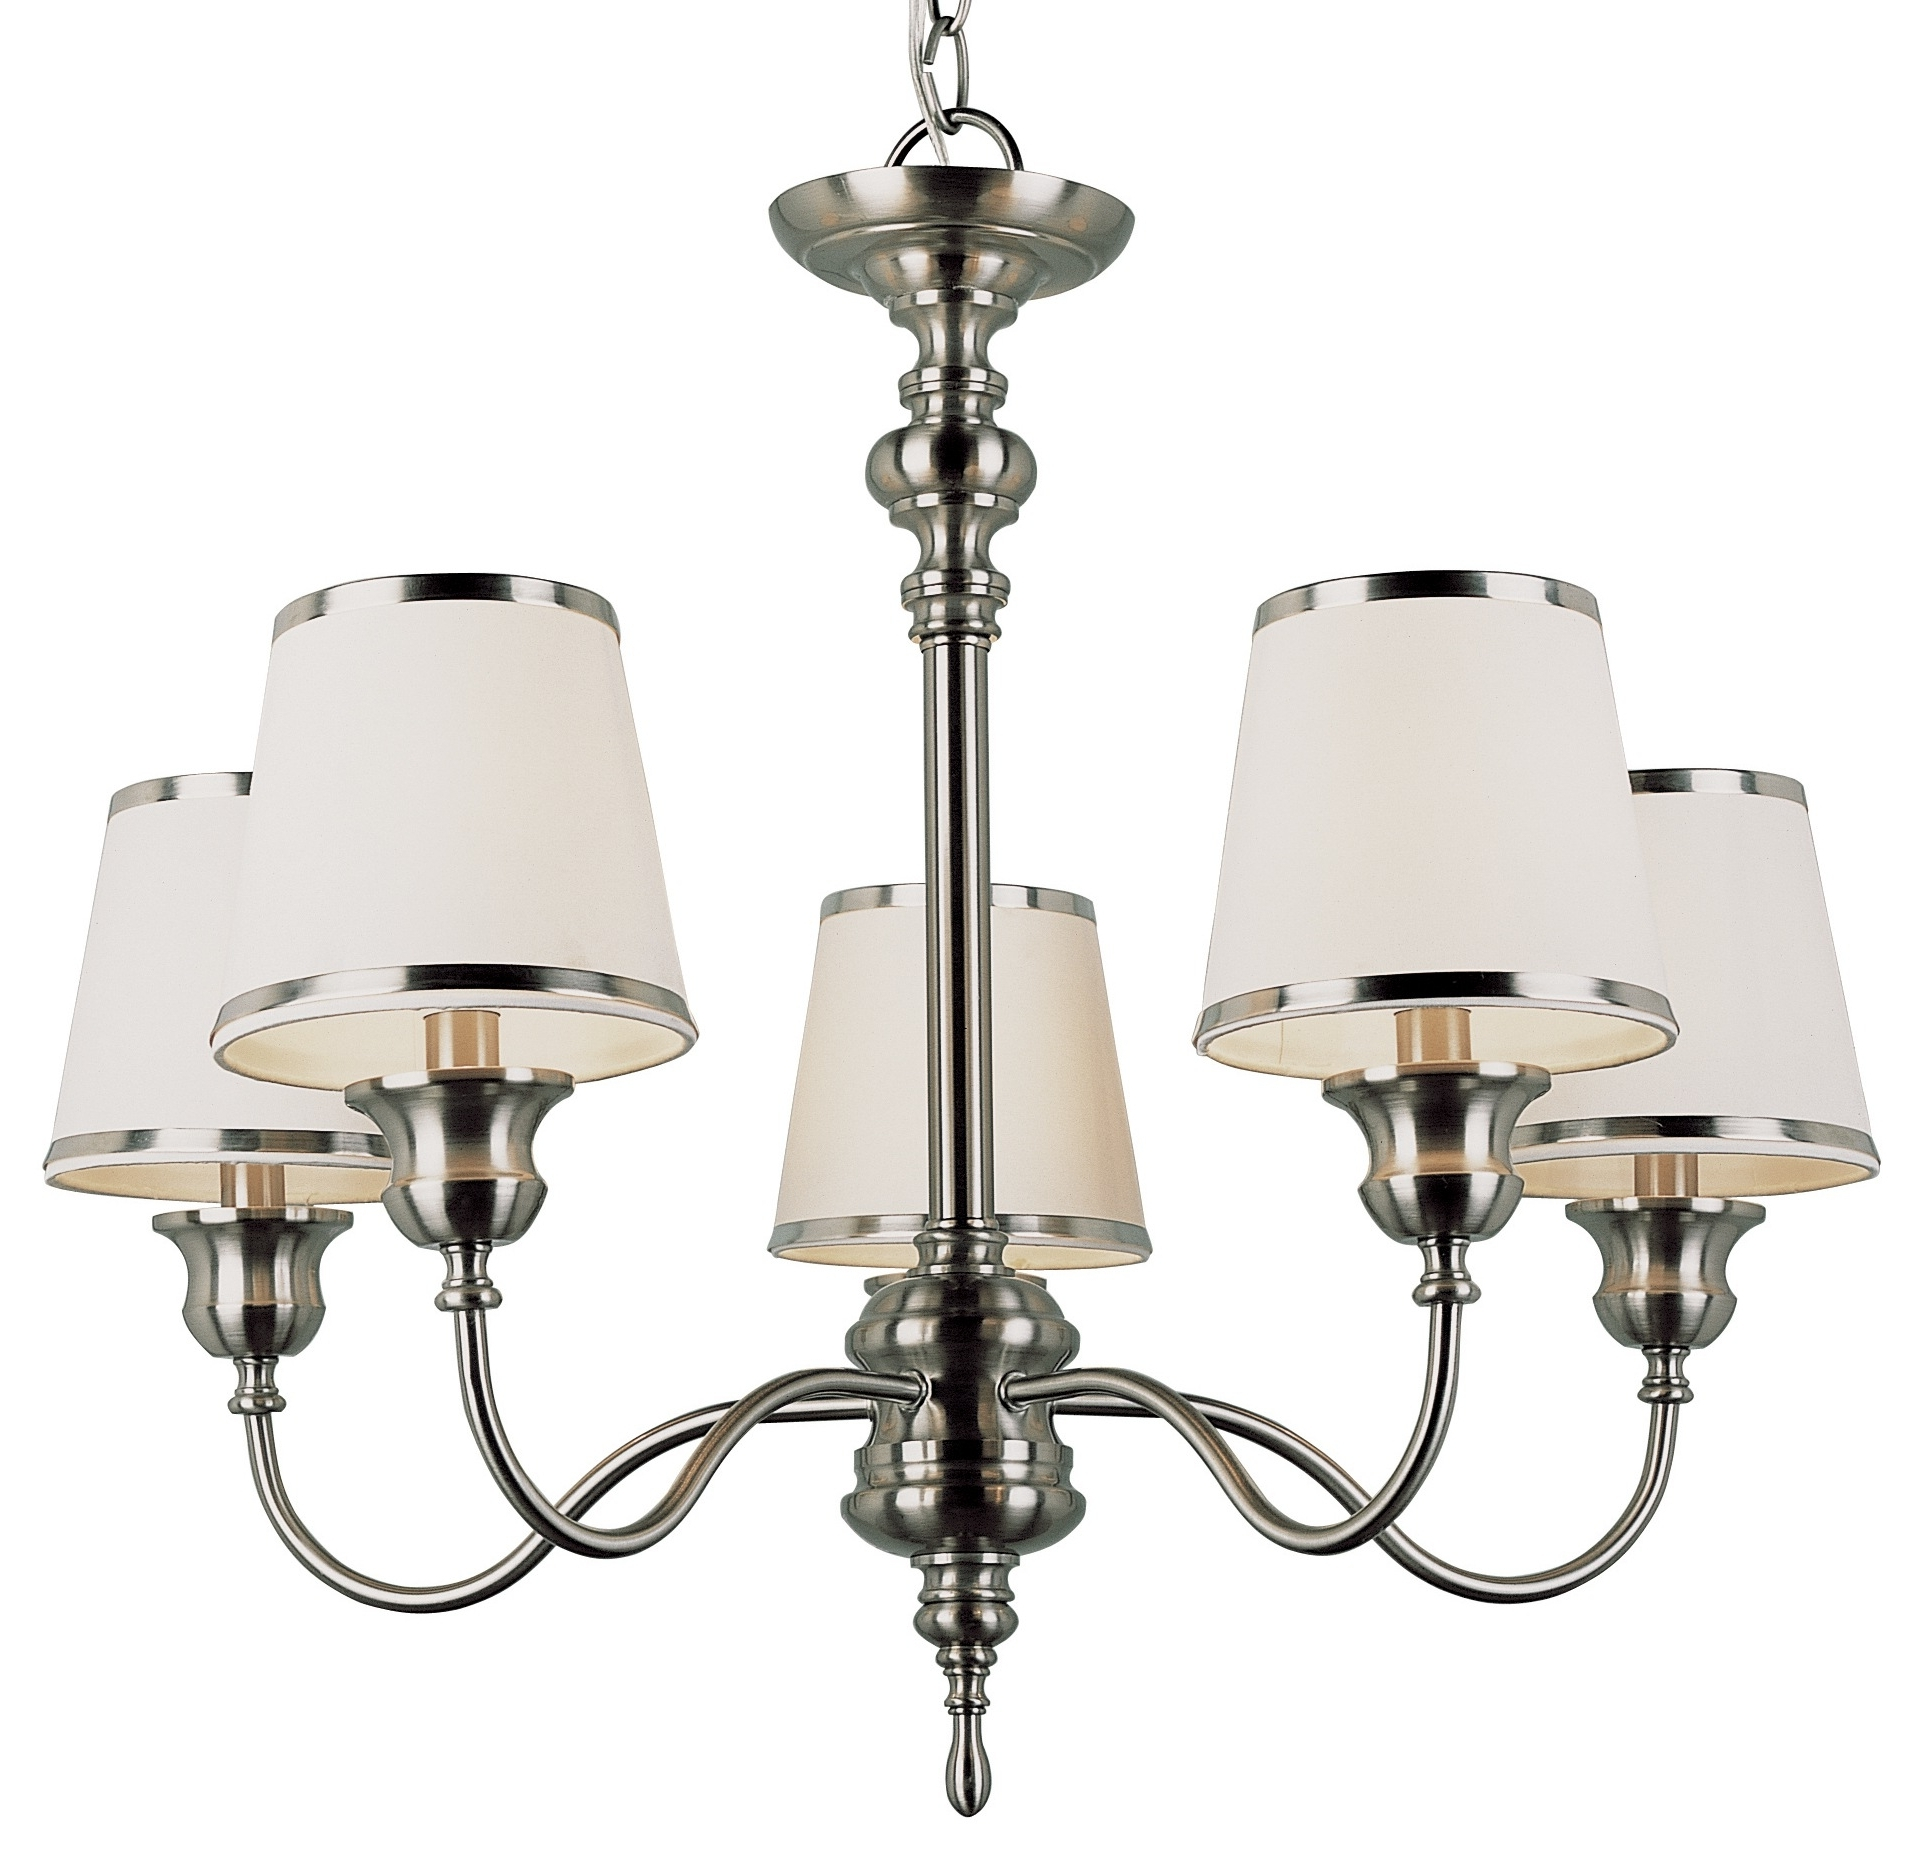 Chandeliers : Sheer Chandelier Lamp Shades Drum Mini Clip On In Most Current Clip On Chandelier Lamp Shades (View 20 of 20)